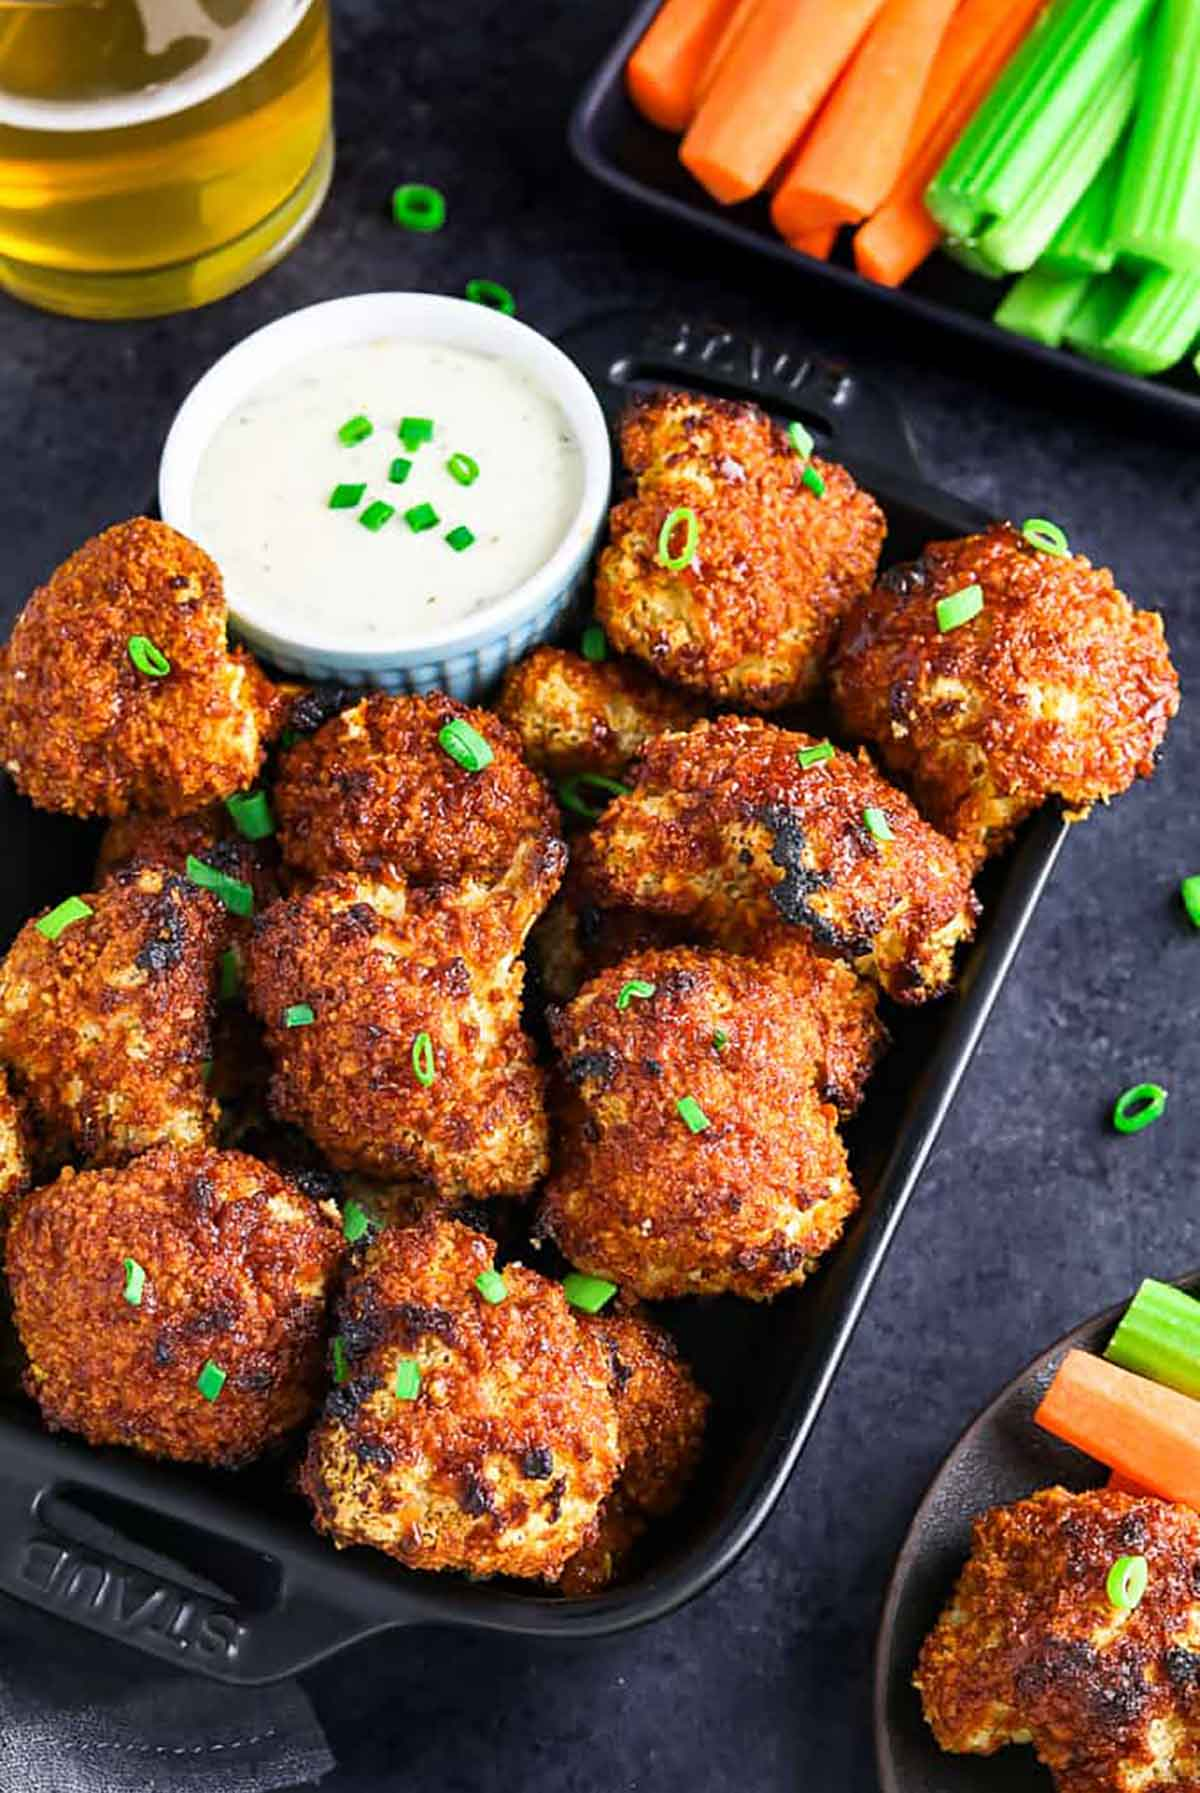 About a dozen cauliflower nuggets on a plate with a dipping sauce.